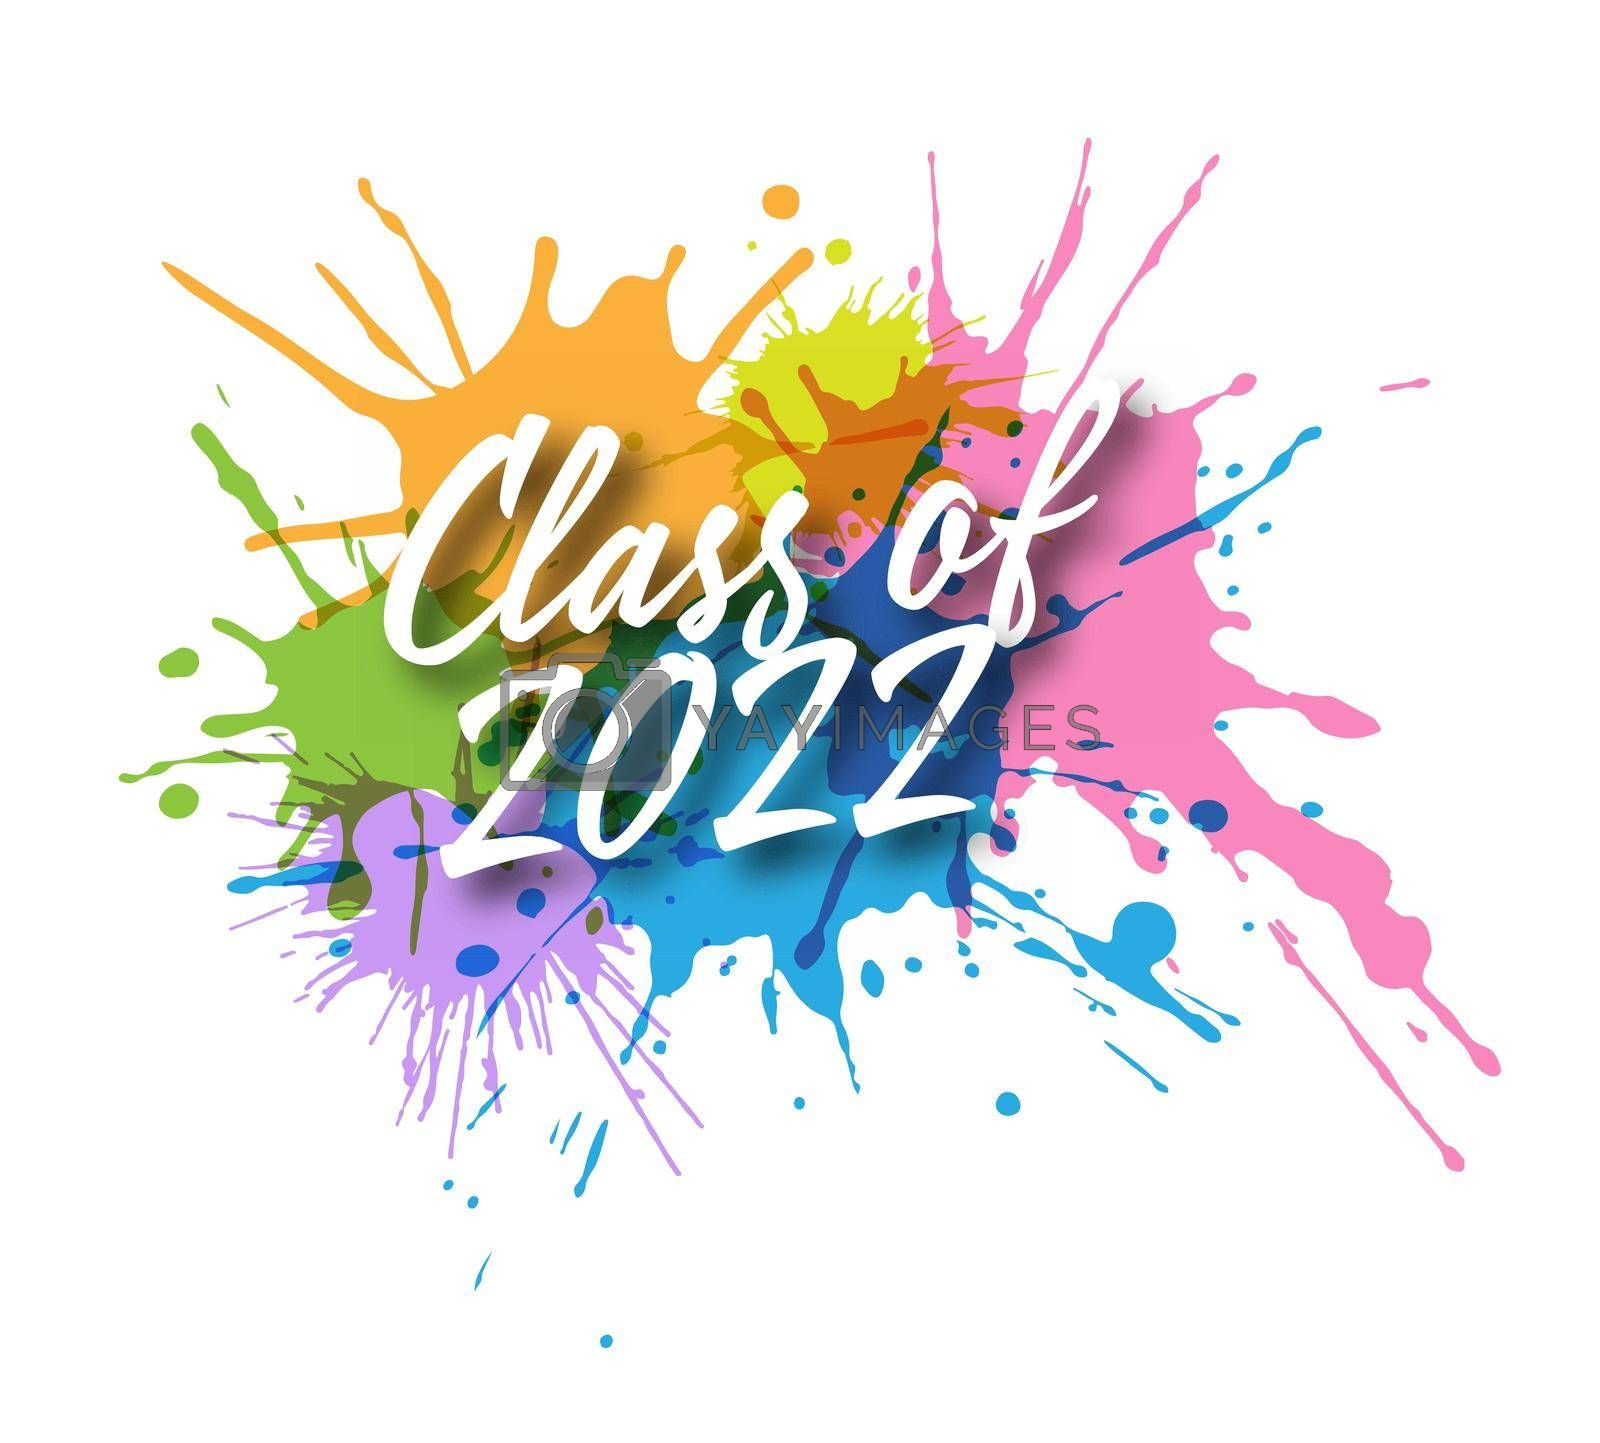 Stylized calligraphic inscription Class of 2022 with shadow on colored blots. Simple Style